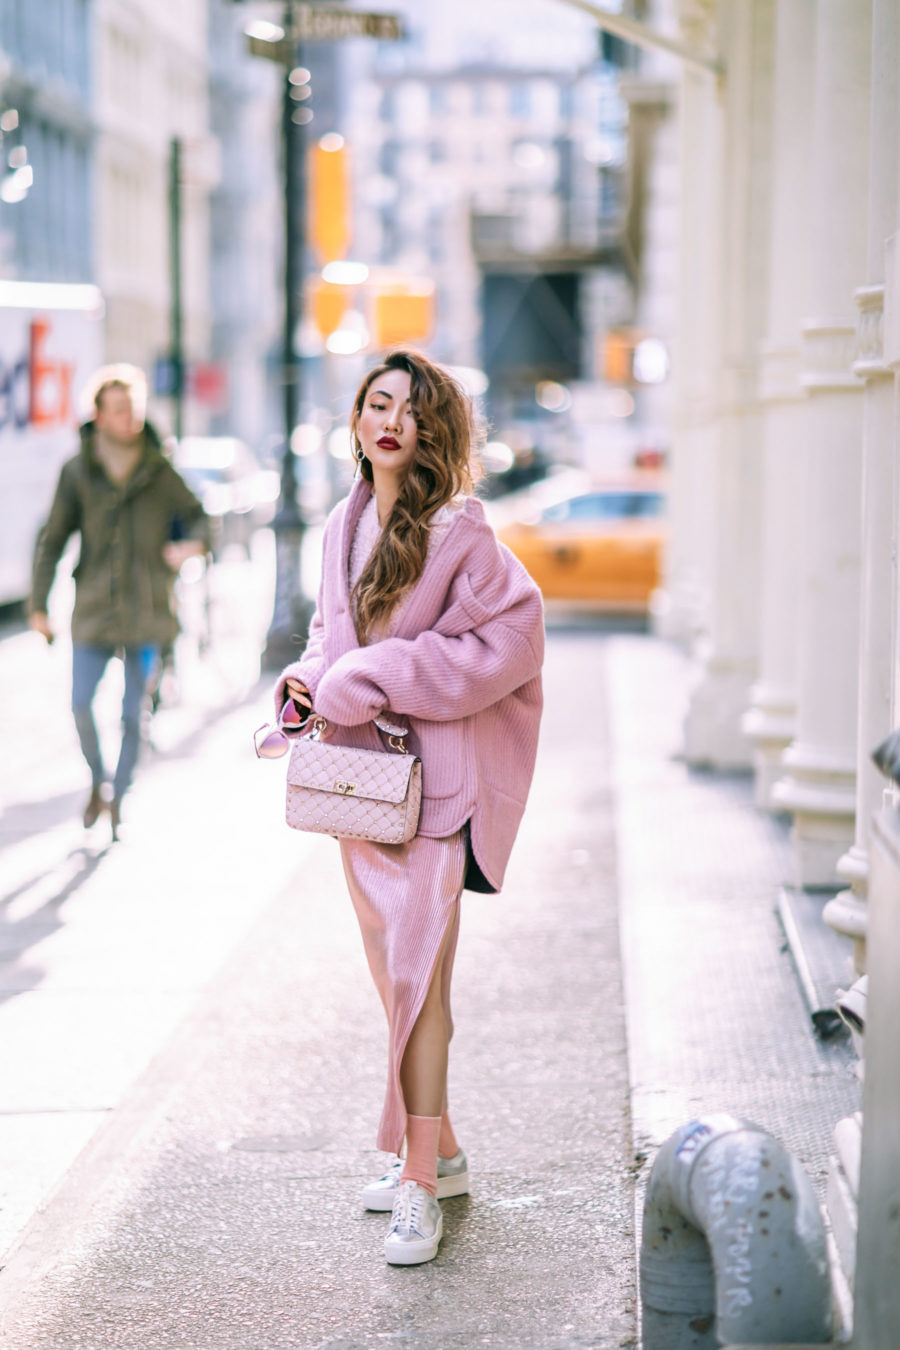 How to Wear the Corduroy Trend - Pink Monochrome Outfit // Notjessfashion.com